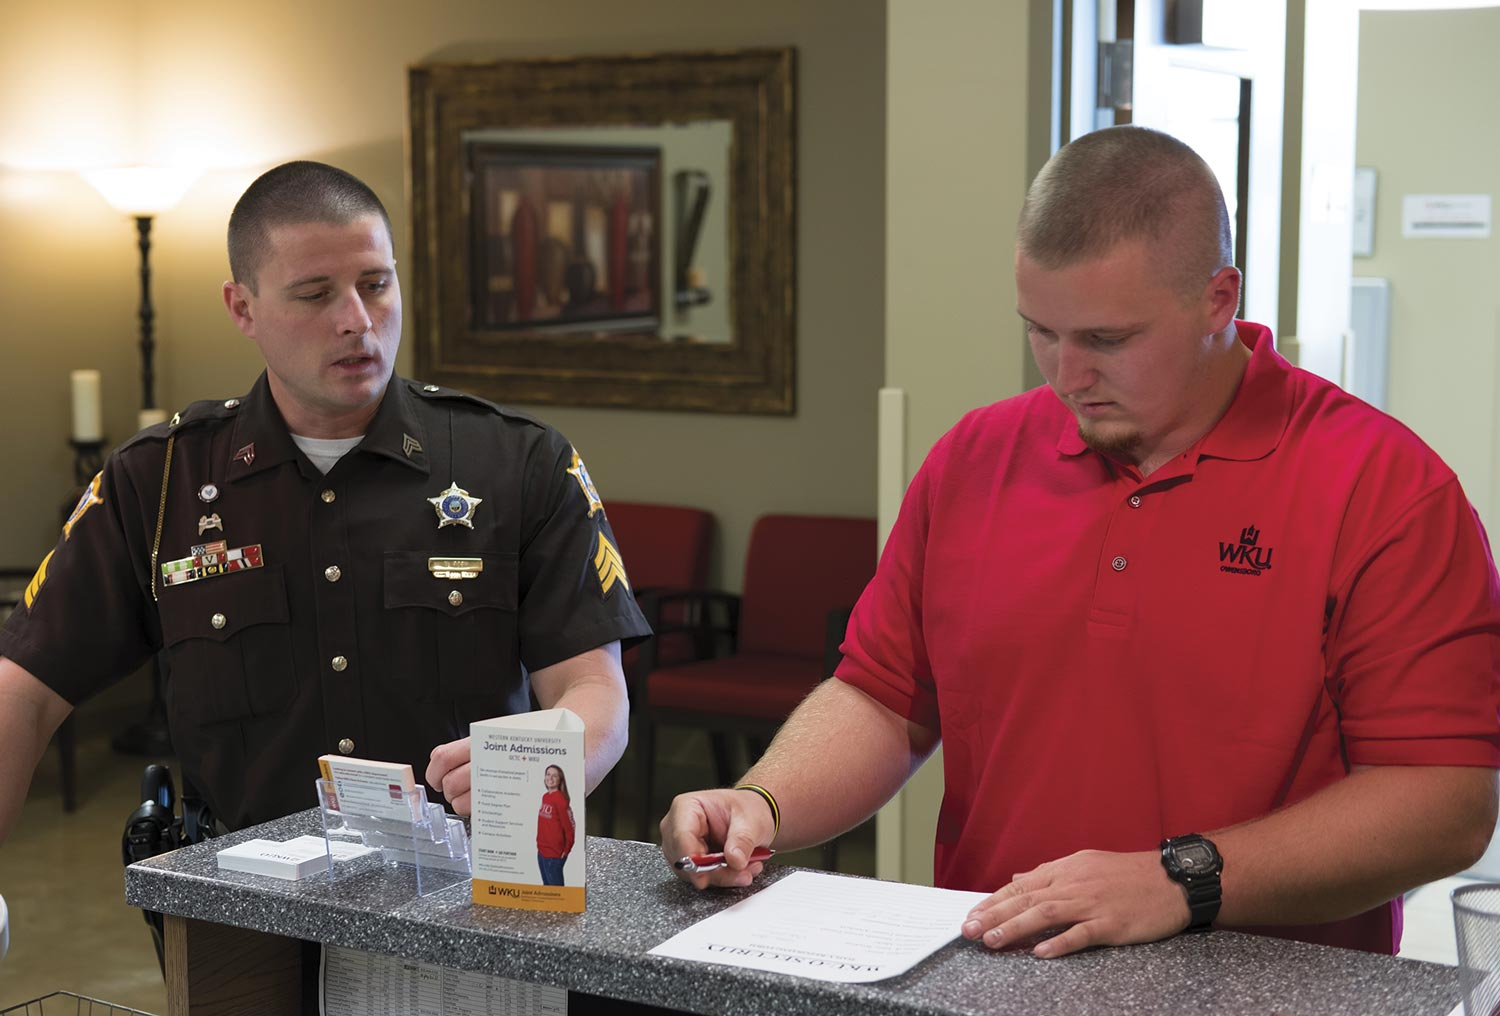 Colton Black, a sophomore at Owensboro Community and Technical College, prepares a duty report for Daviess County Sheriff's Sgt. Nick Roby, who oversees the Daviess County Sheriff's Office internship program. Patrolling the WKU-Owensboro campus gives the interns an experience of which they can take ownership. (Photo by Jim Robertson)